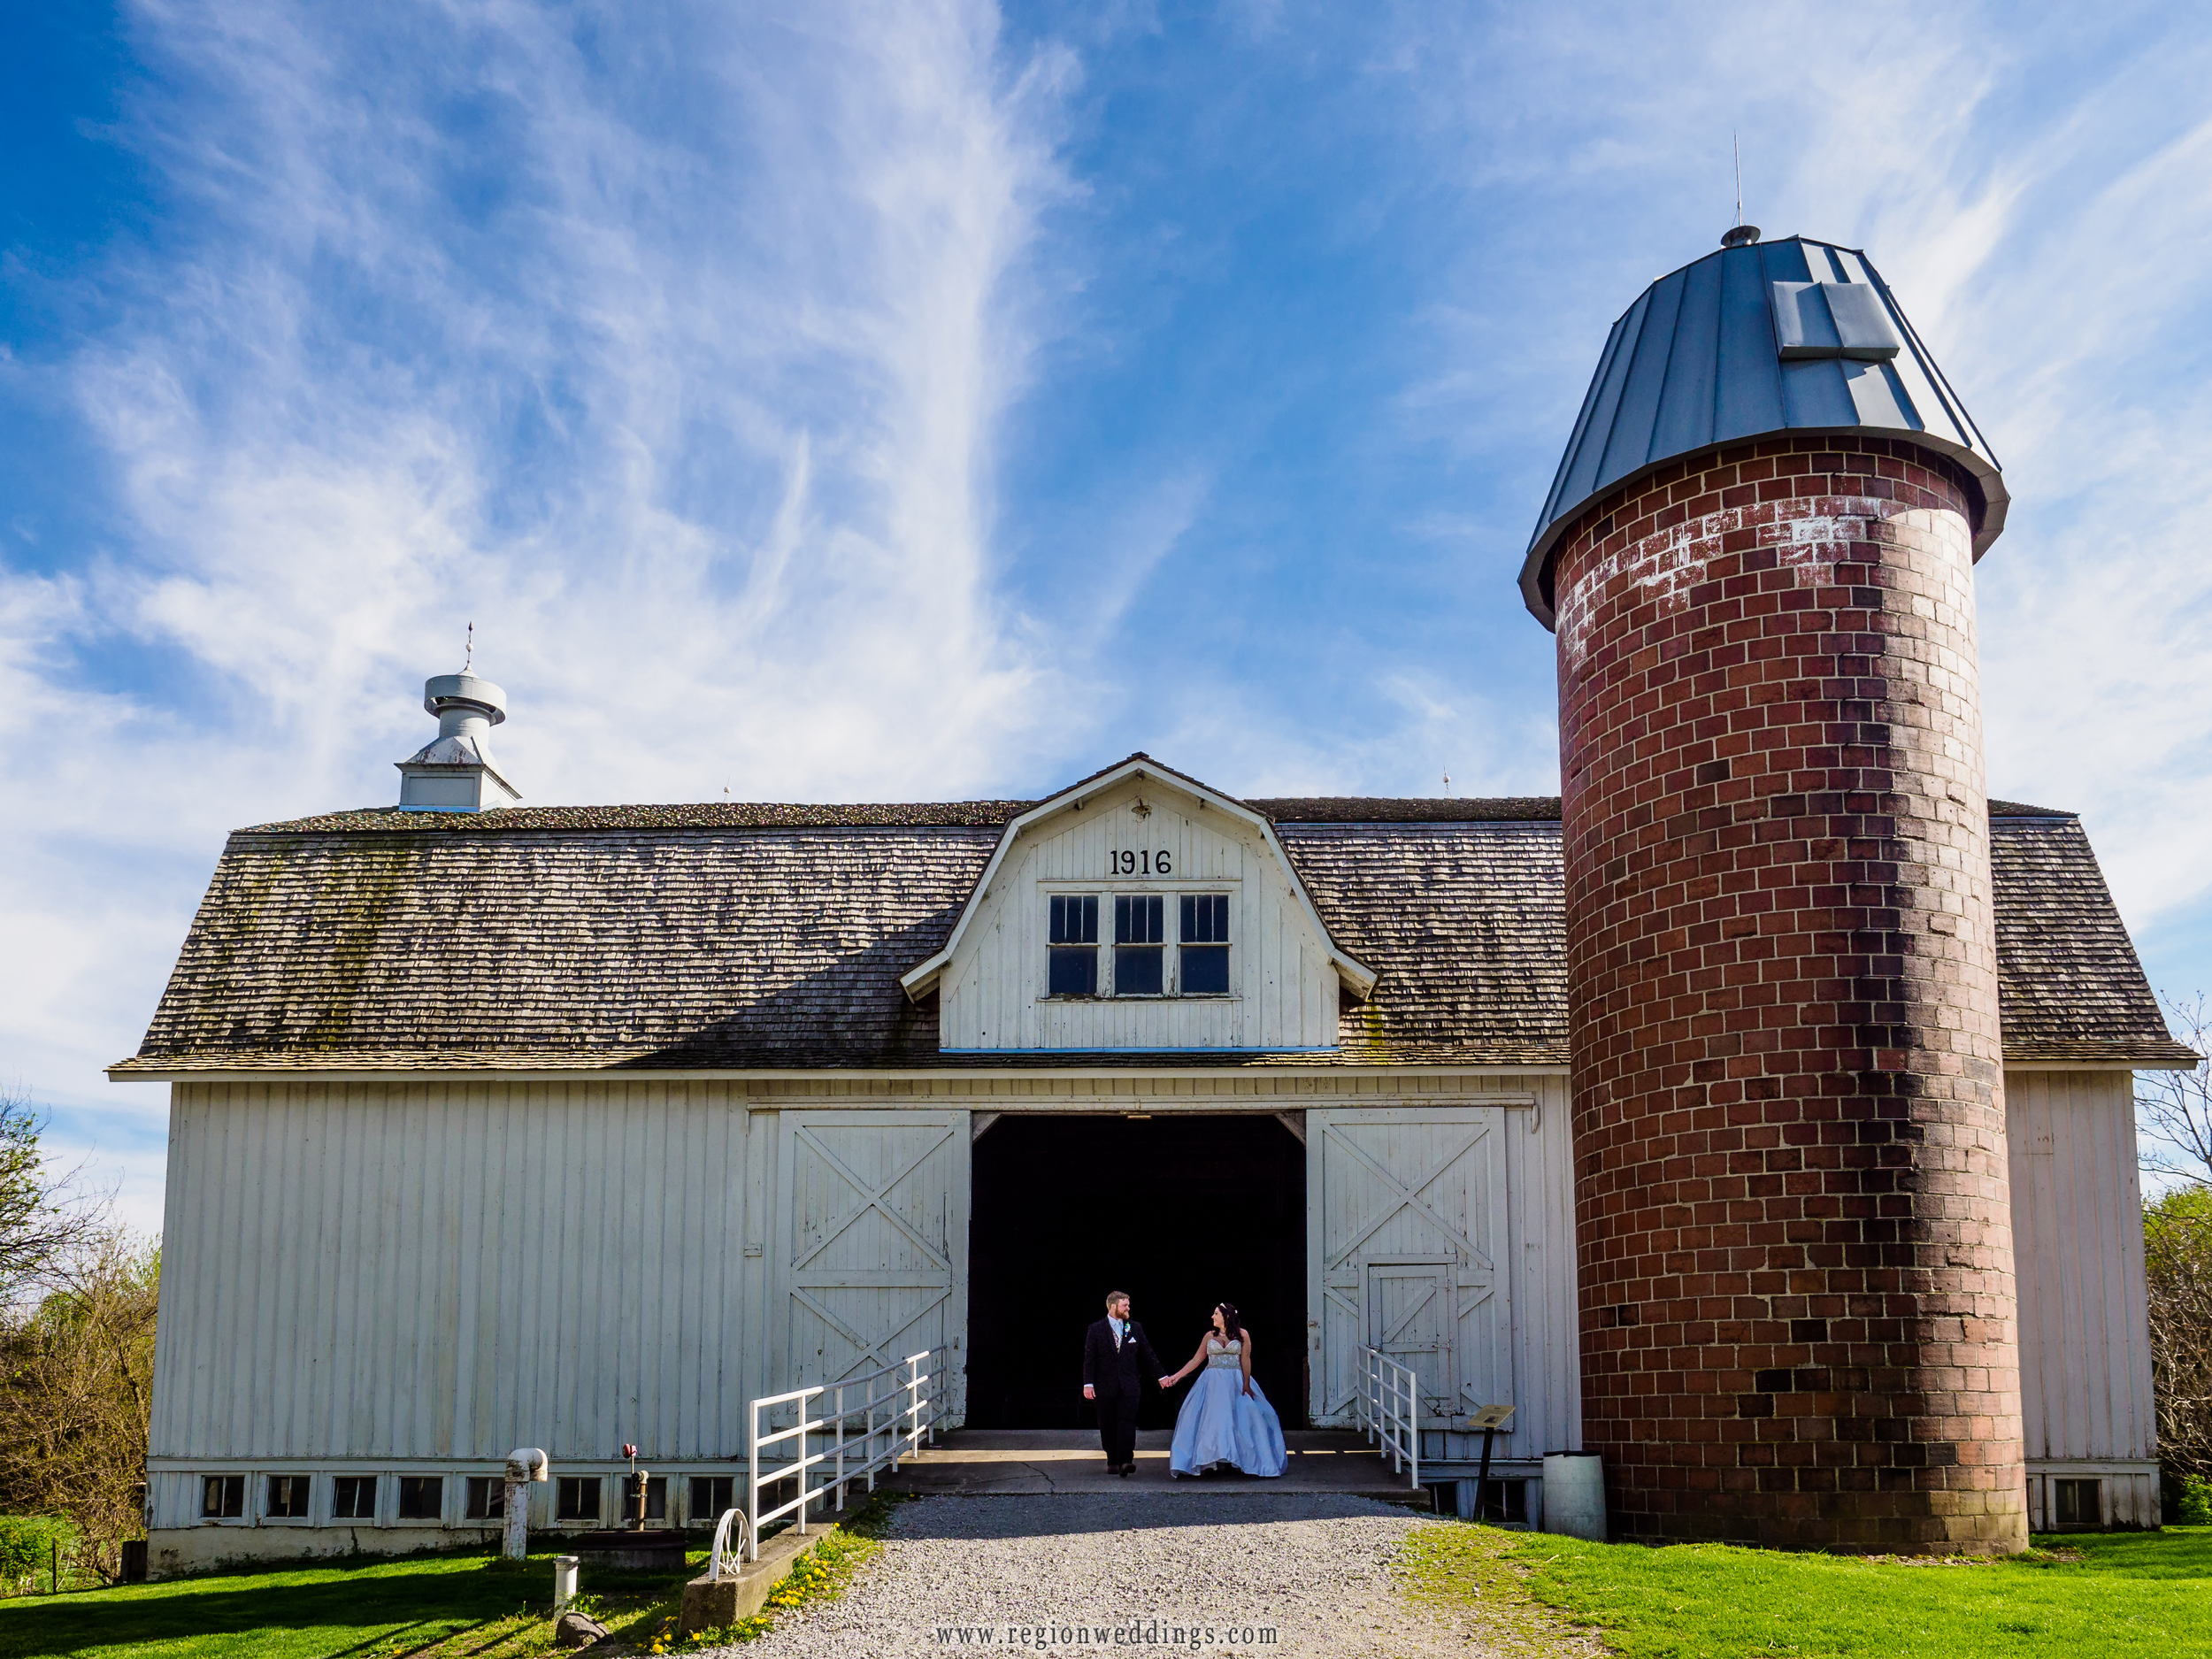 The bride and groom take a stroll at the Buckley Homestead barn in Lowell, Indiana.